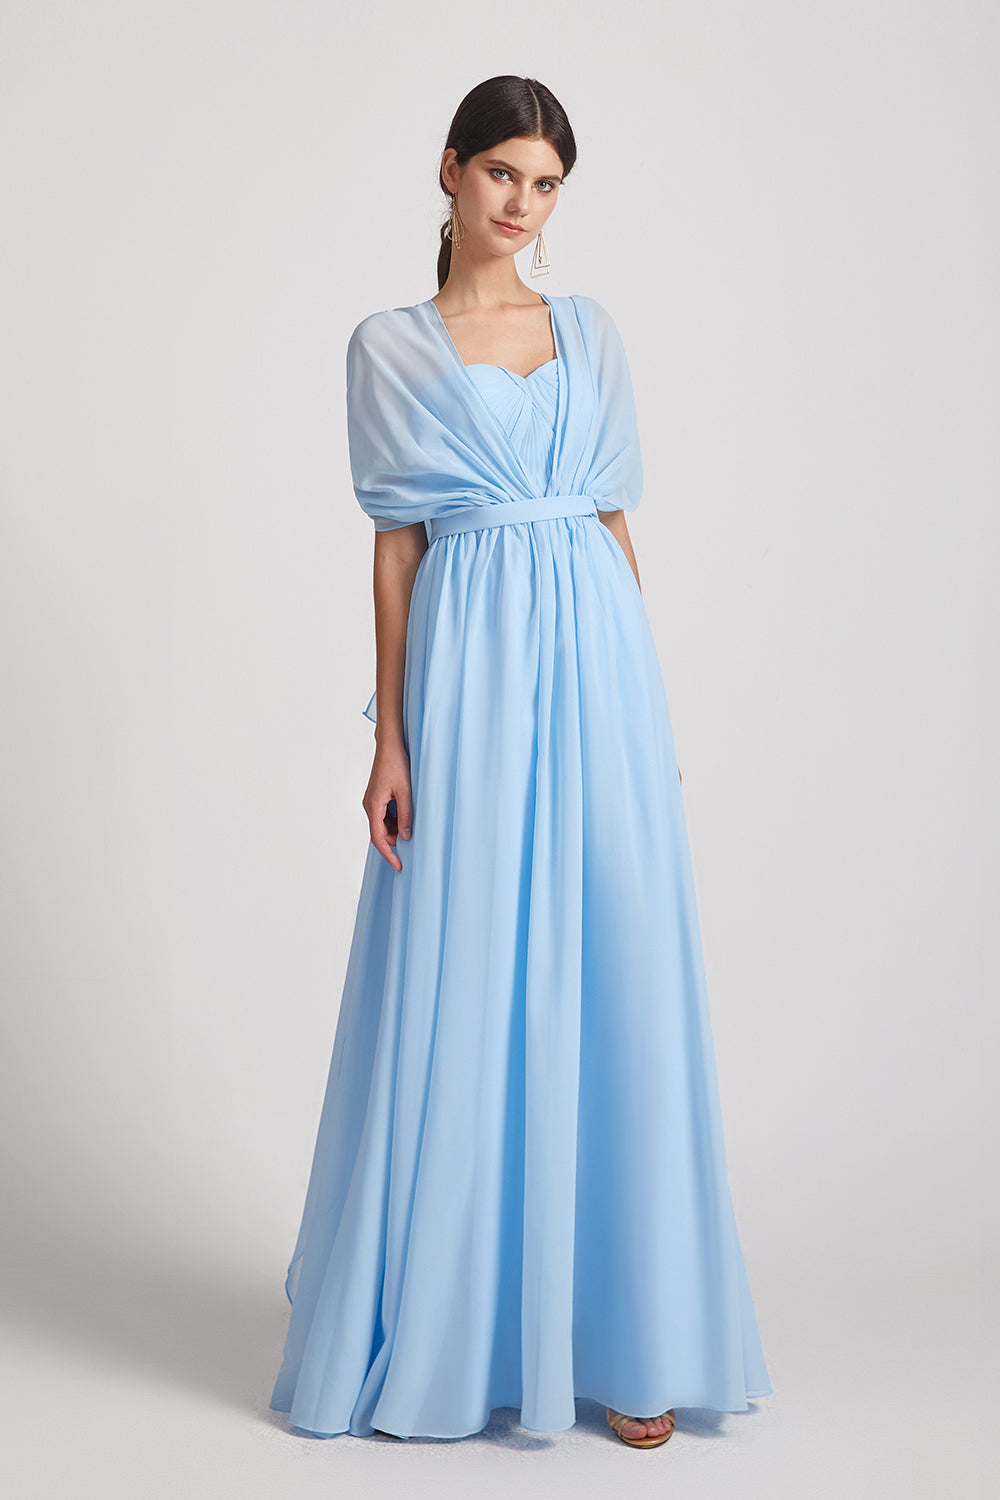 a-line blue chiffon dresses for bridesmaid